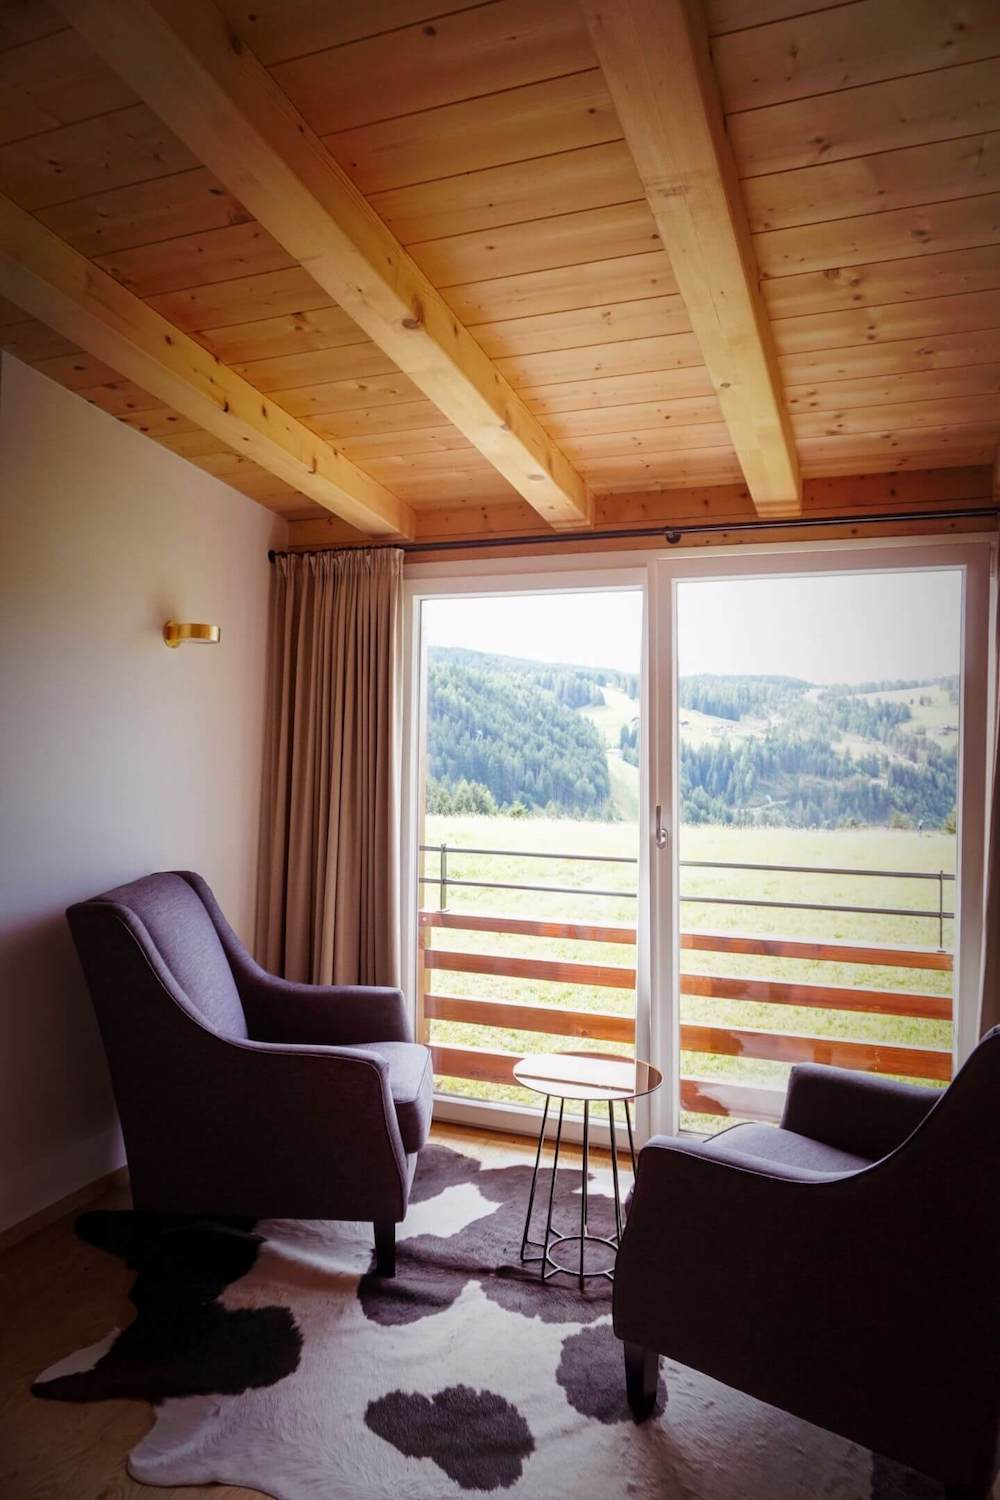 Hotel Rodella room, Where to Stay in Val Gardena Dolomites, Italy